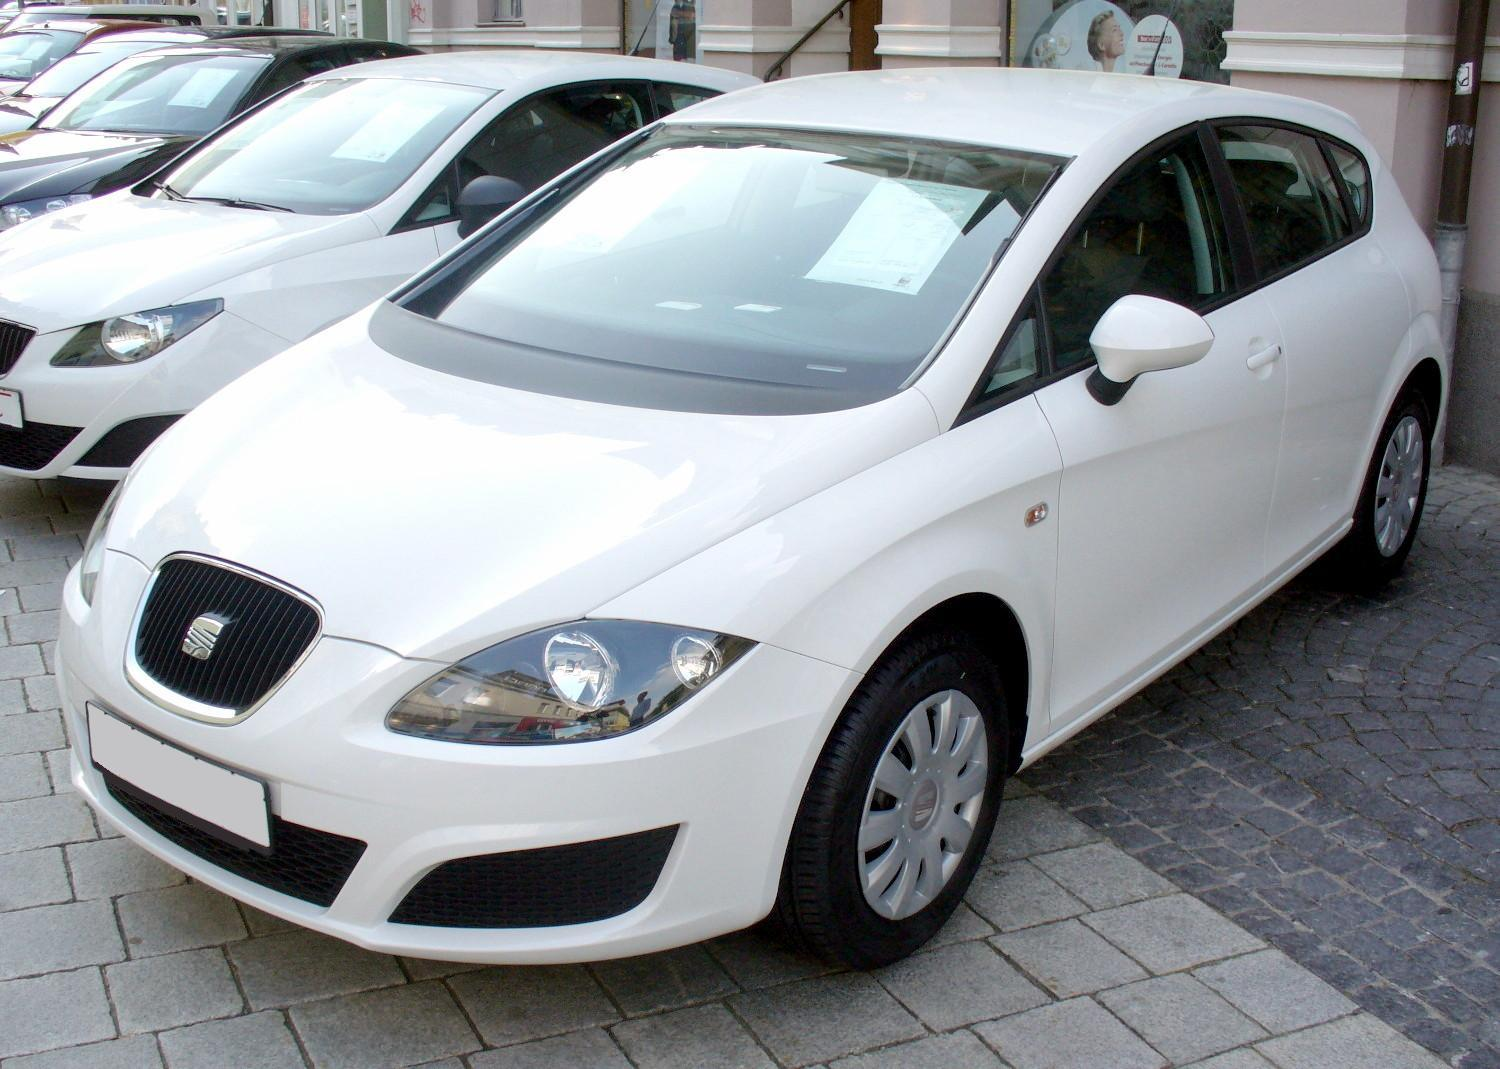 file seat leon 1p facelift jpg wikimedia commons. Black Bedroom Furniture Sets. Home Design Ideas